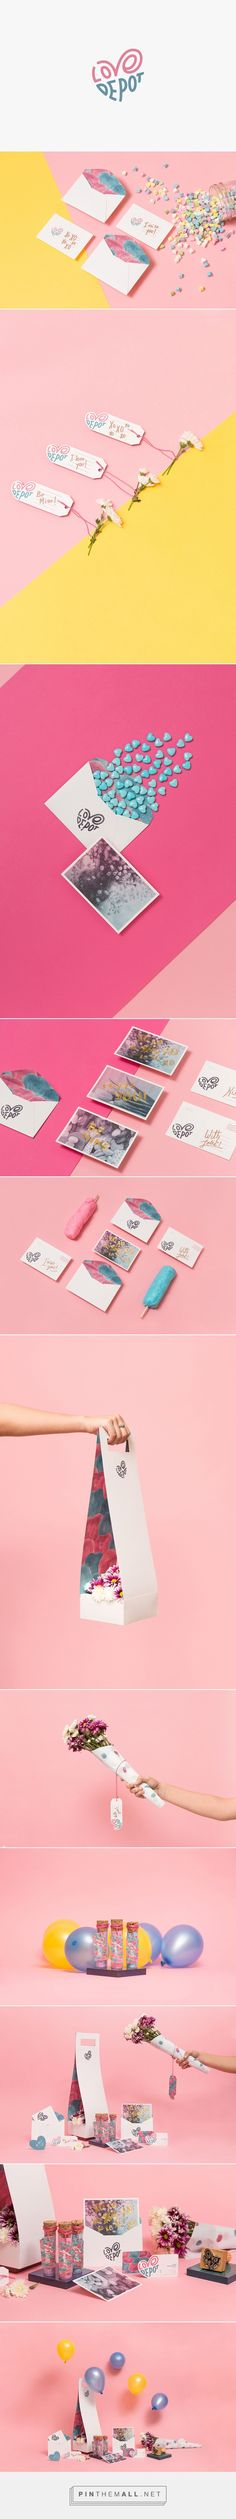 Love Depot Gift Shop Branding by The Branding People | Fivestar Branding Agency – Design and Branding Agency & Curated Inspiration Gallery